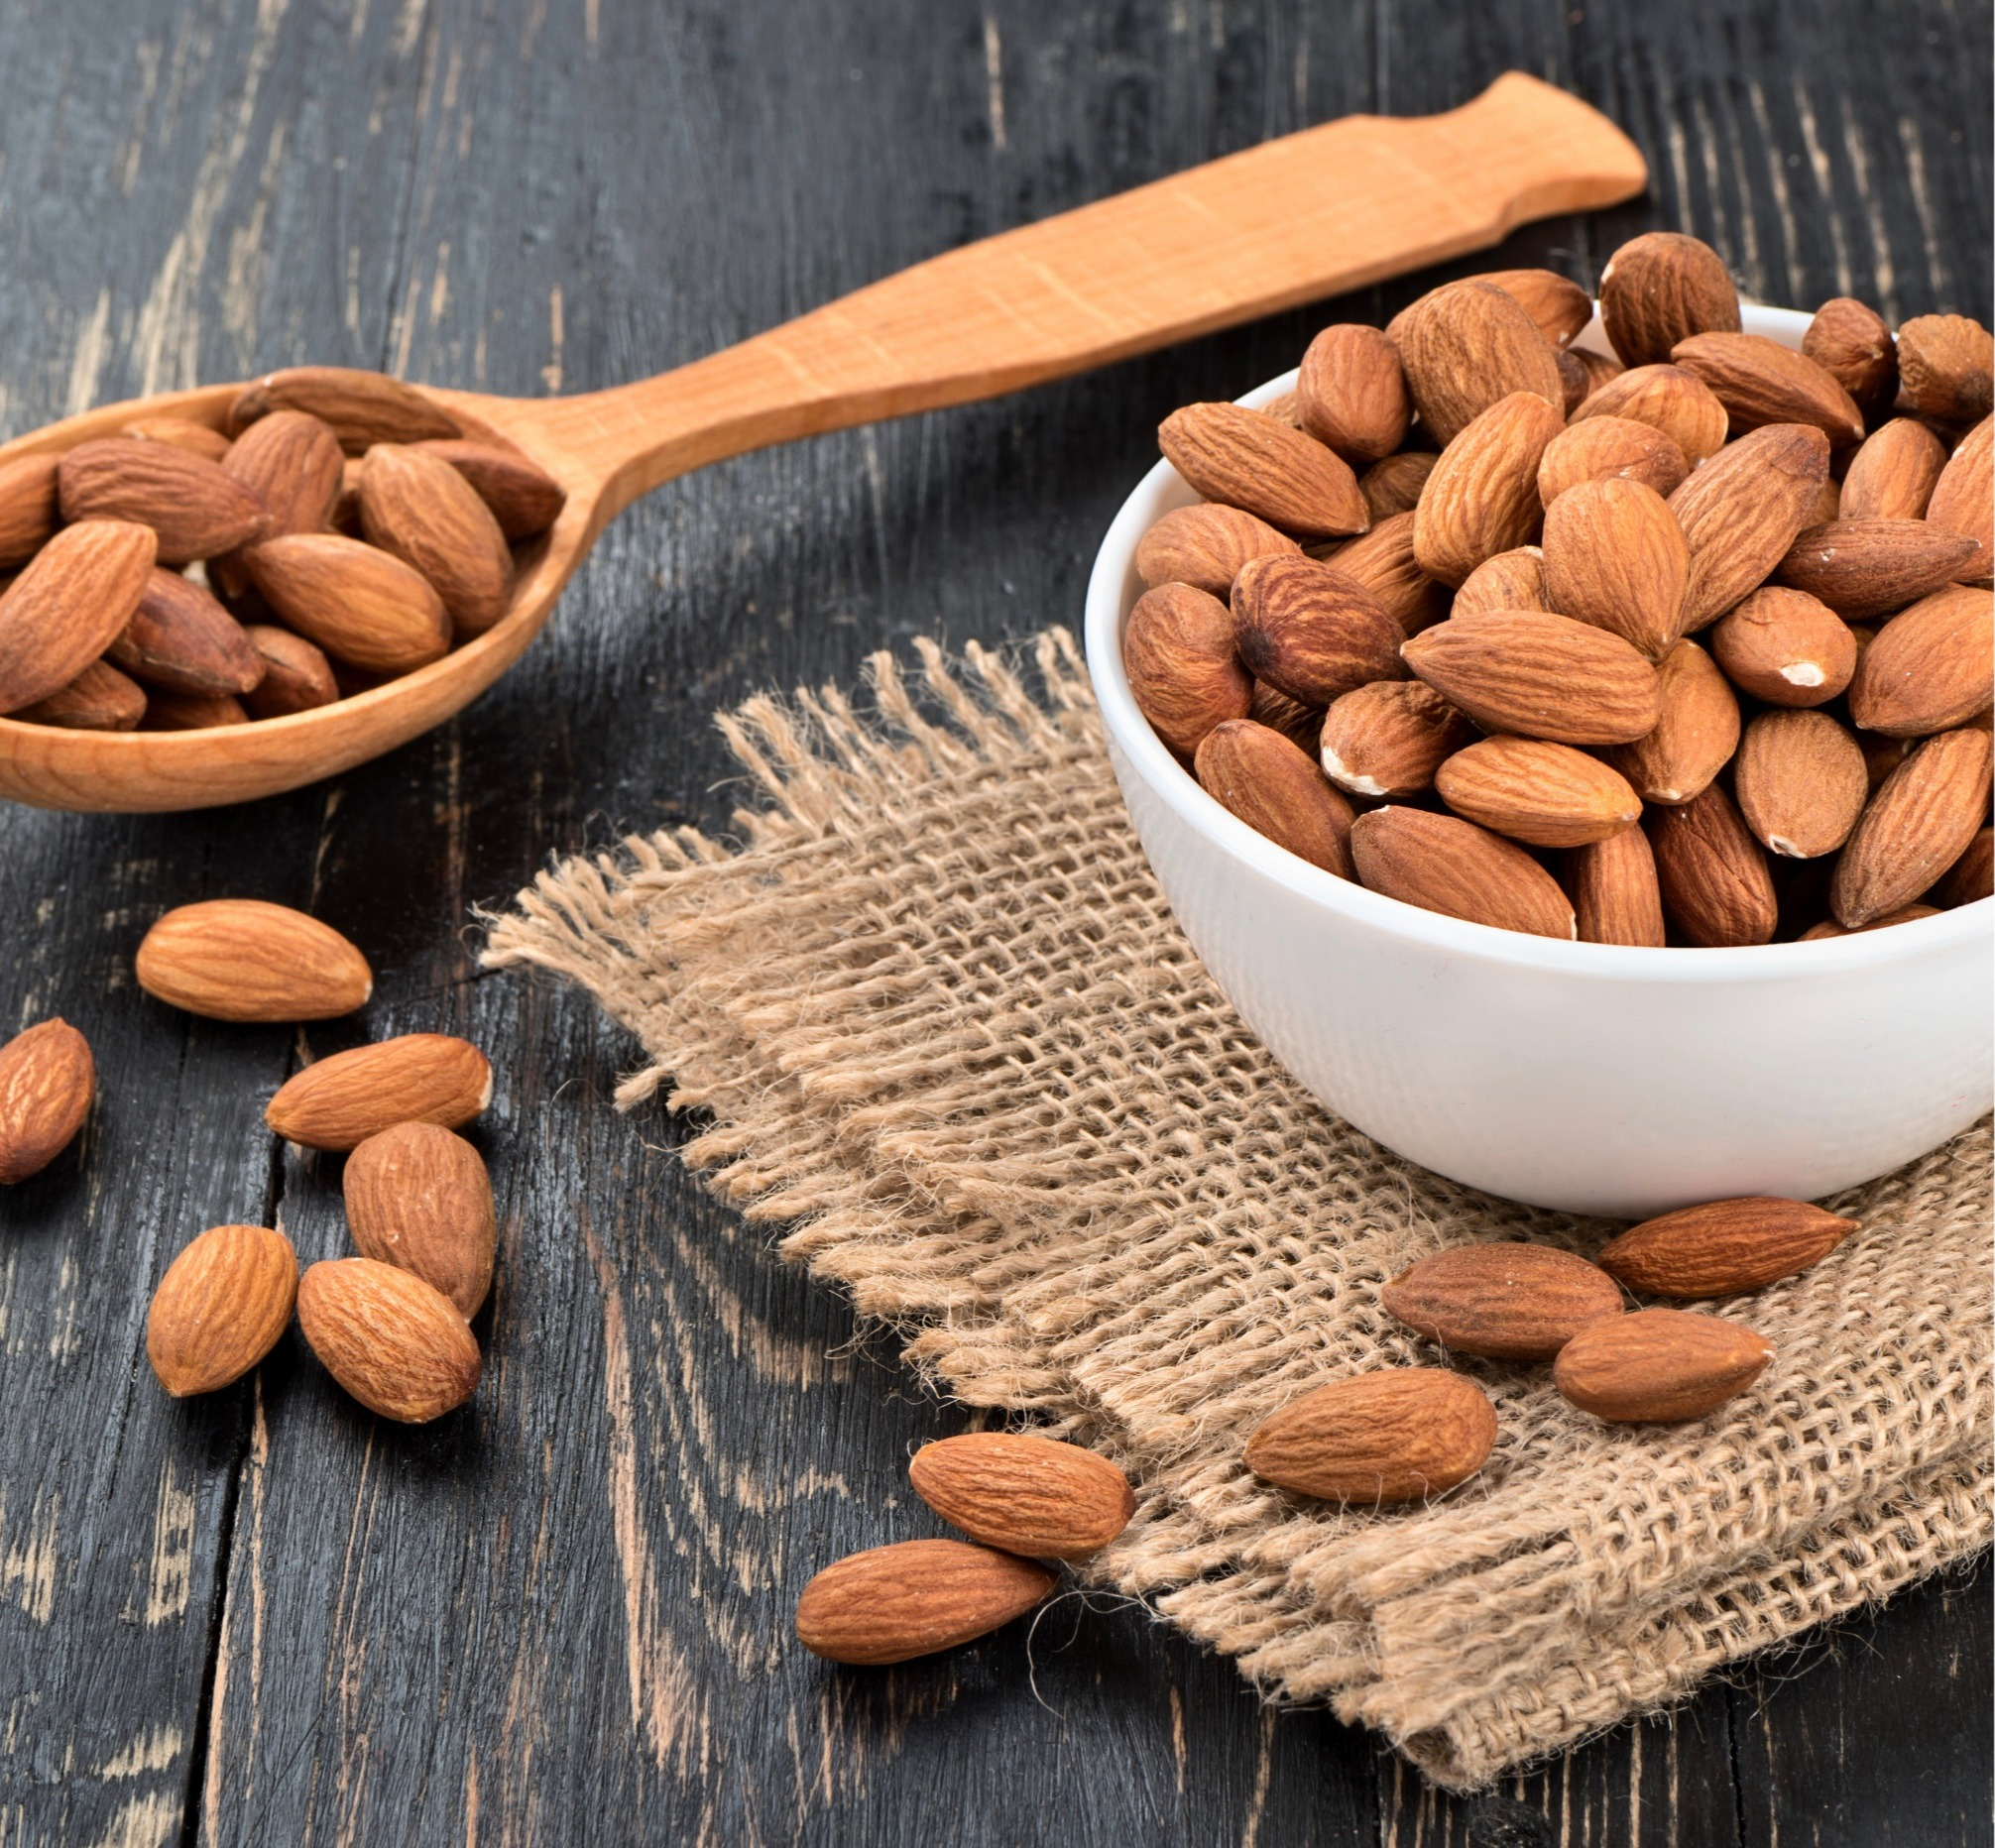 Unroasted and unsalted almonds